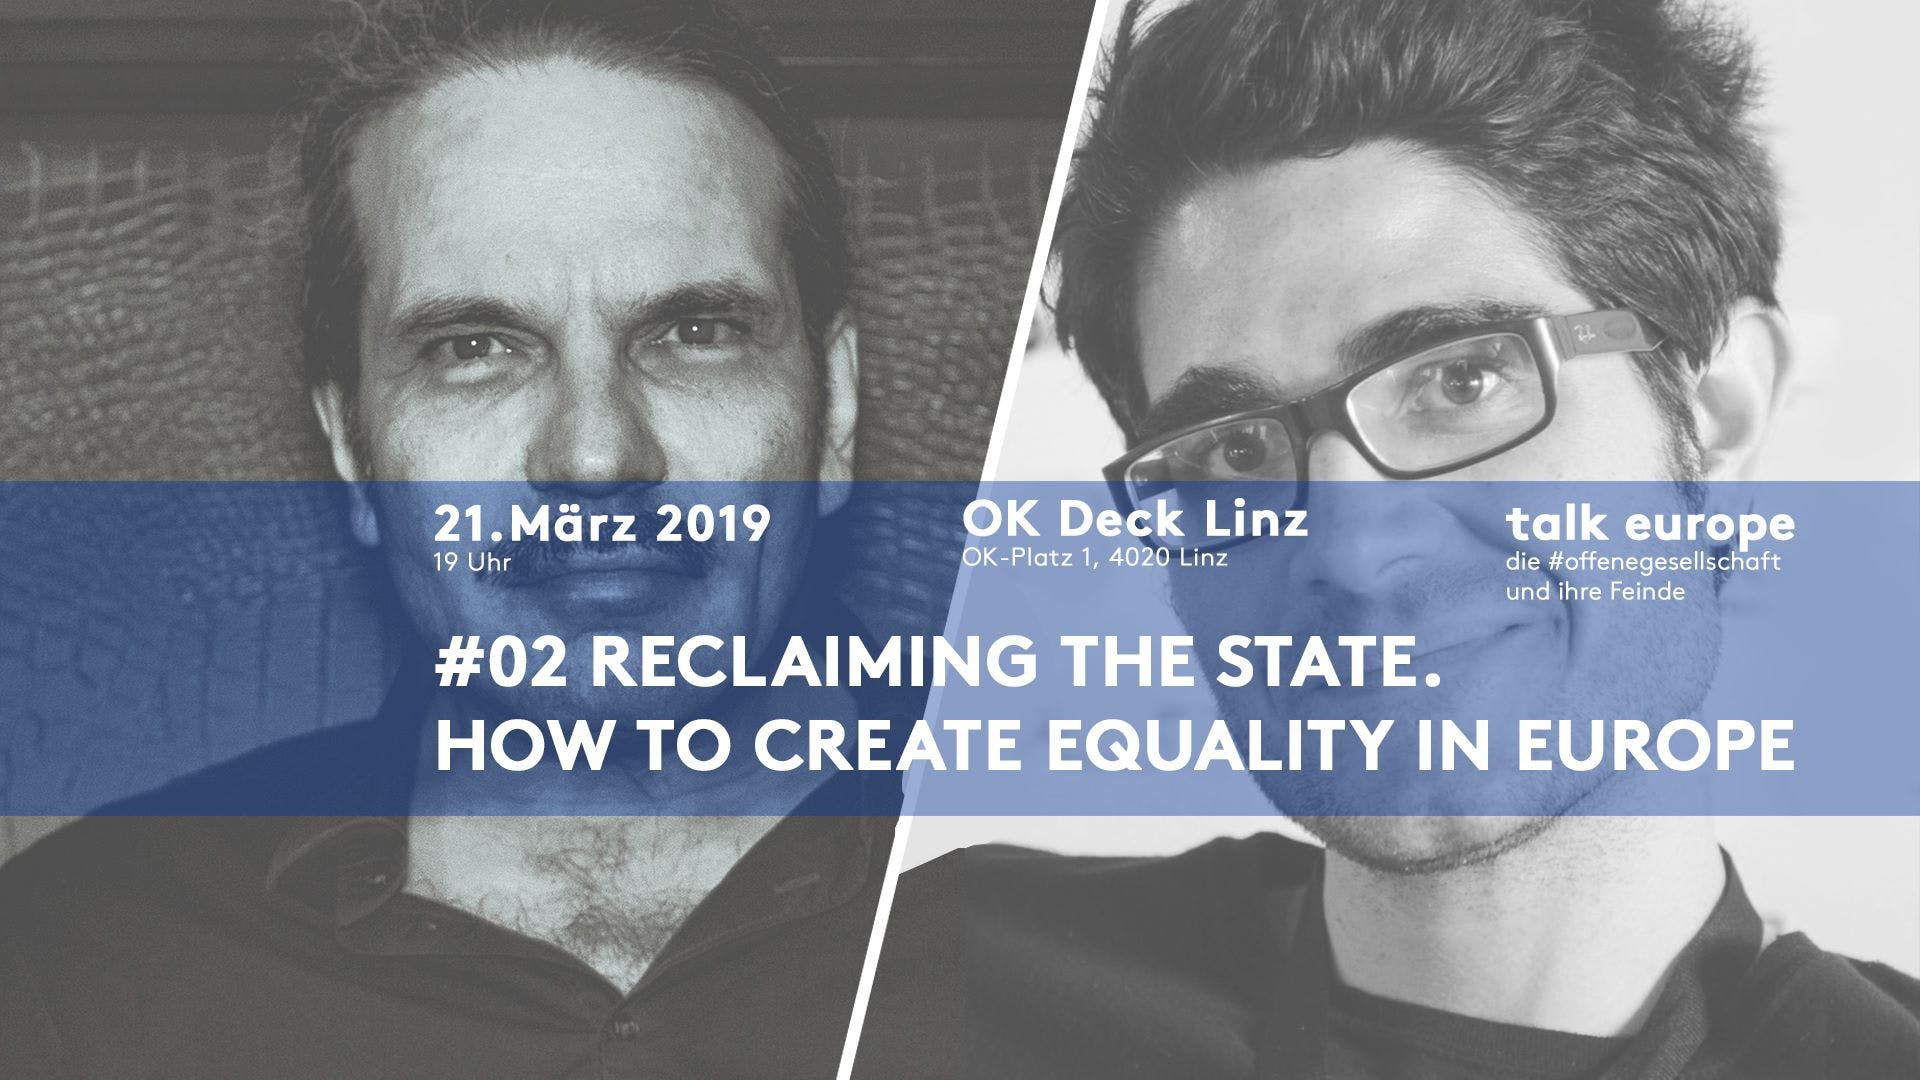 Reclaiming the State. How to create Equality in Europe